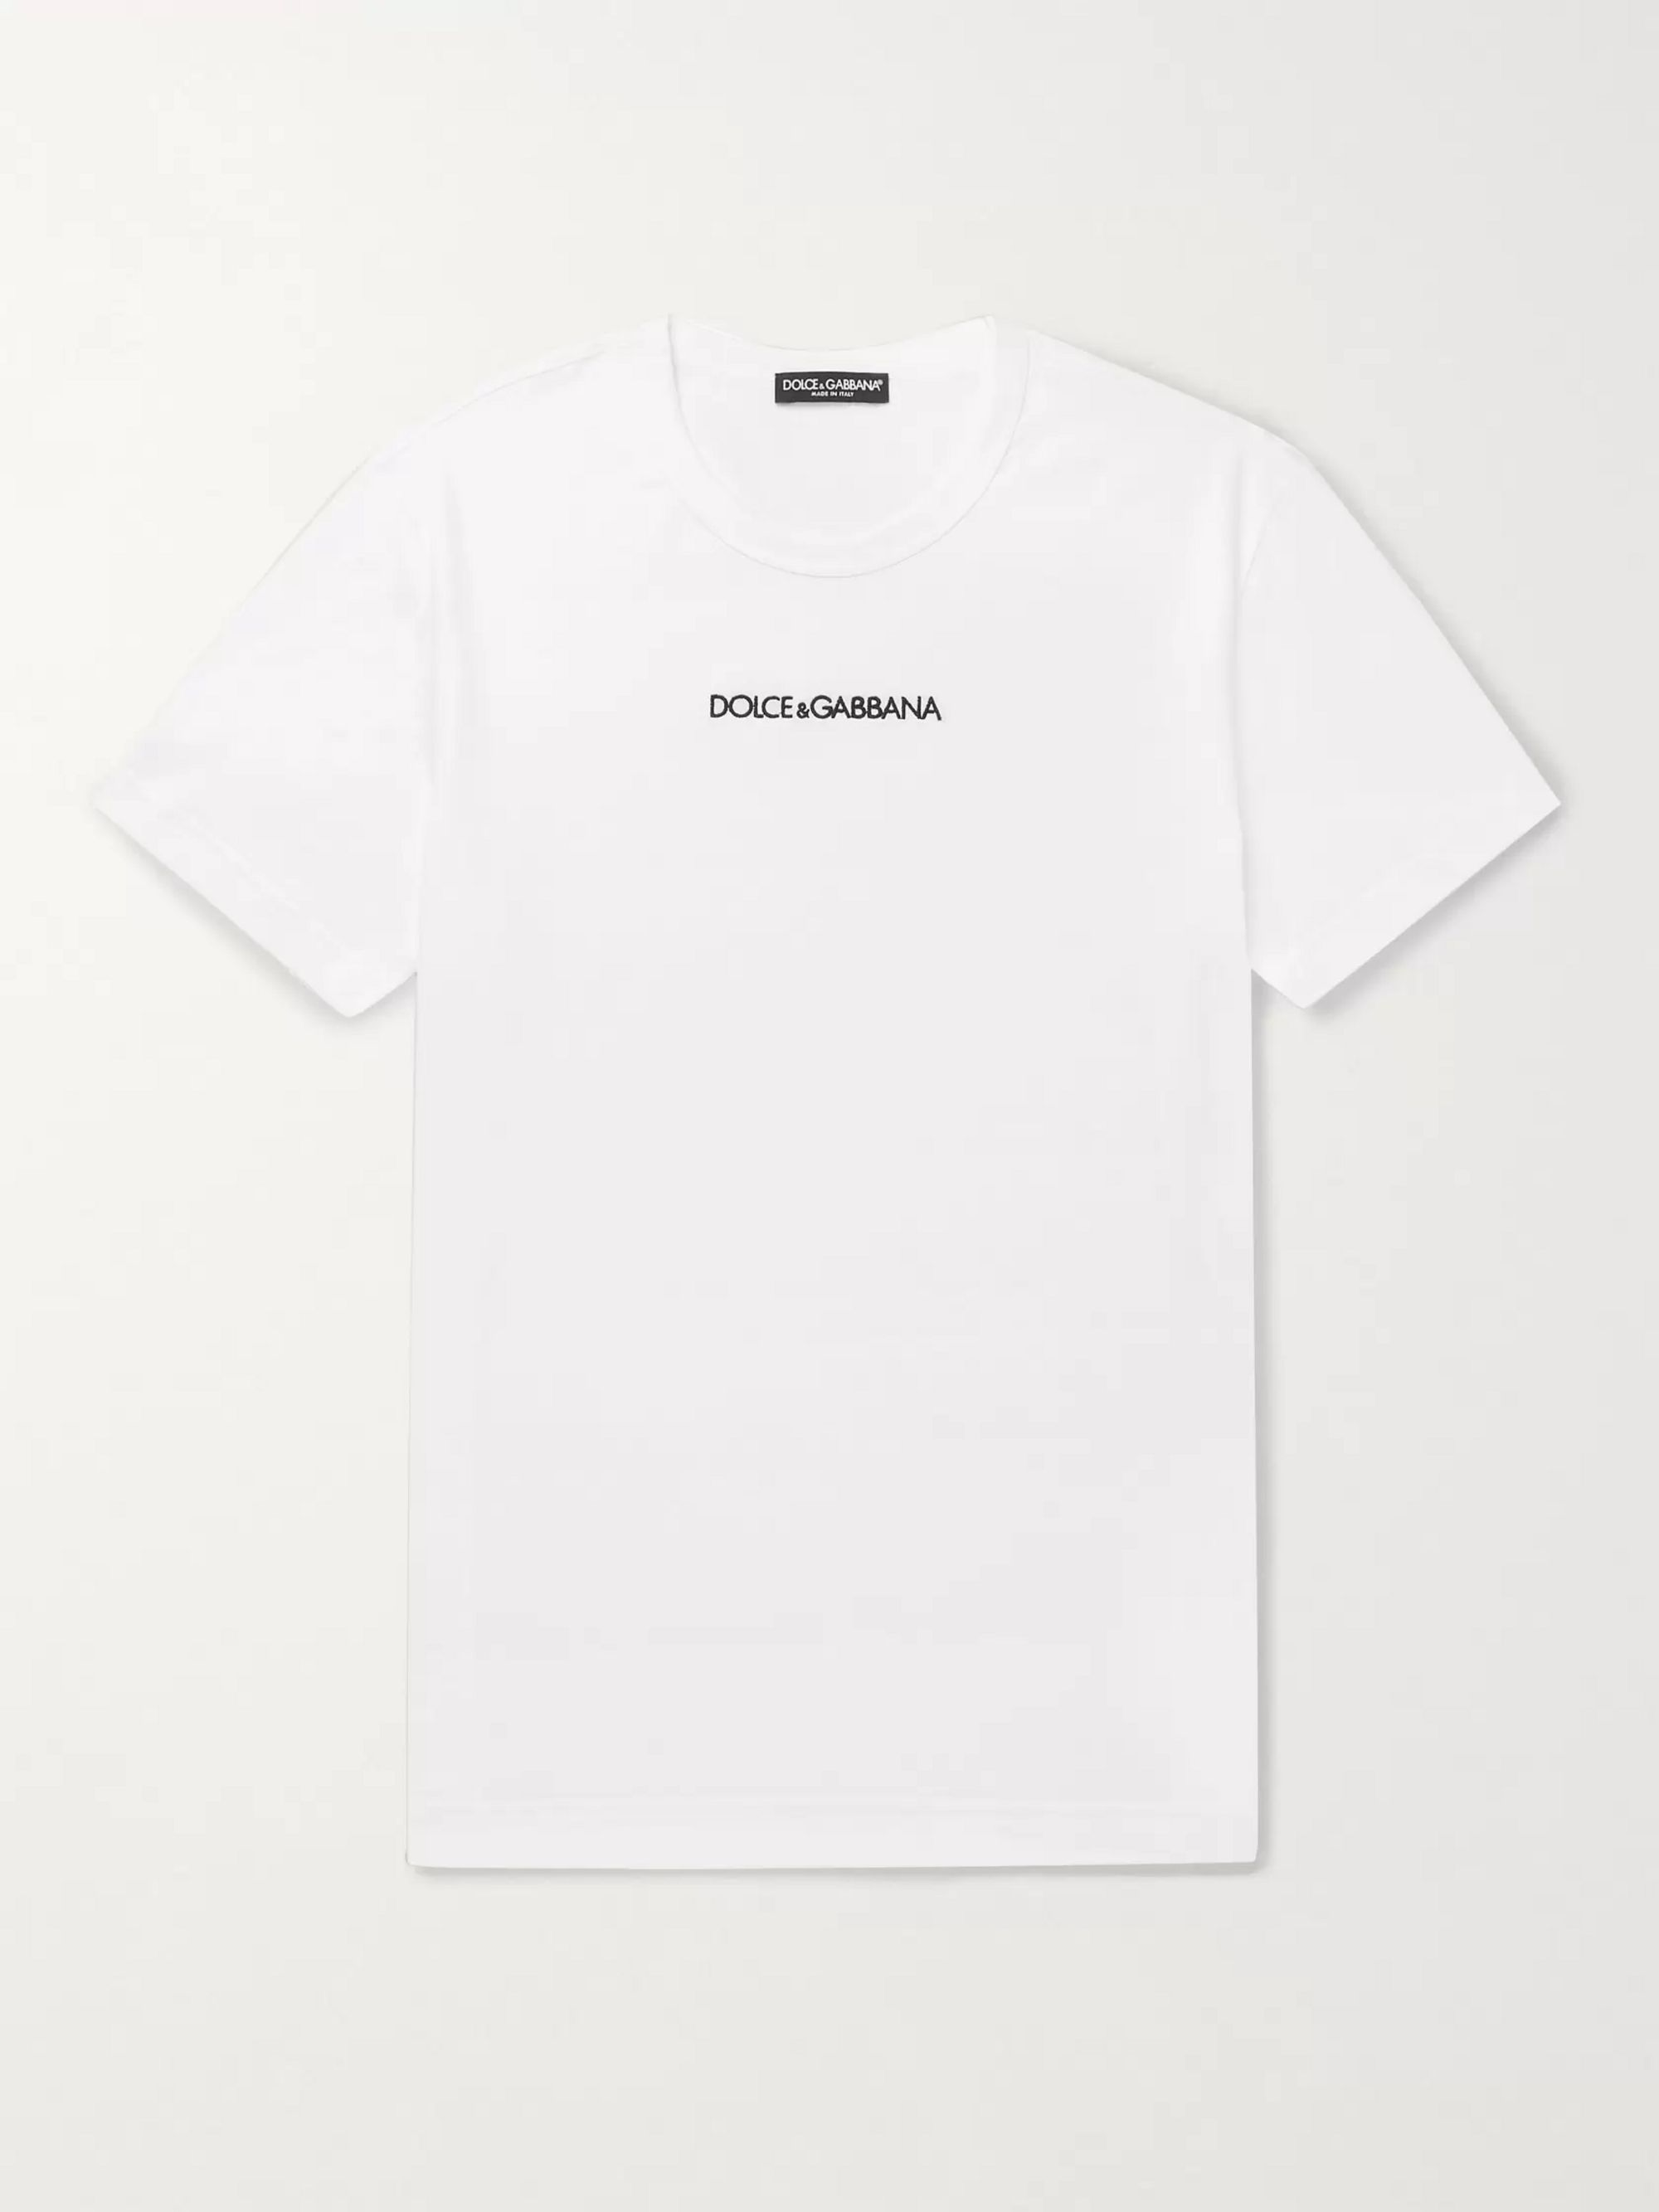 Dolce & Gabbana Slim-Fit Logo-Embroidered Cotton-Jersey T-Shirt